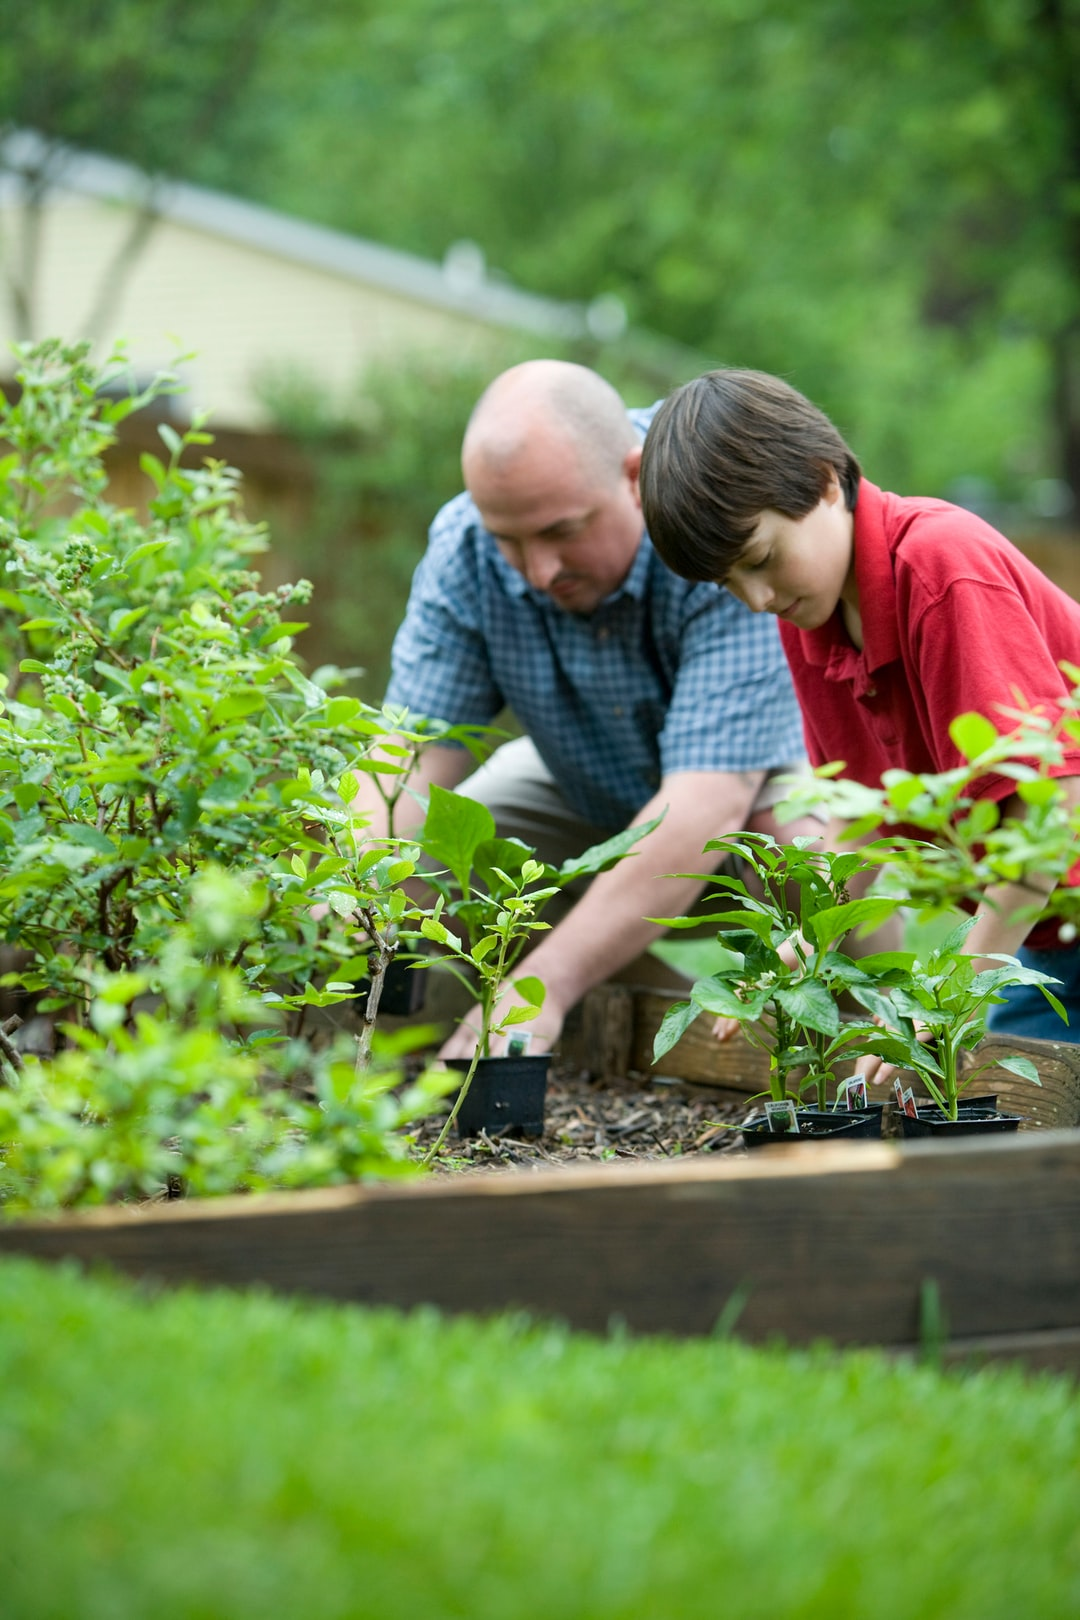 In so many ways, gardening is a very beneficial activity, not only for the environment, but for those who partake in this exercise. This father and son were thoroughly enjoying the fresh outdoor air, as they were planting what appeared to be vegetables in their raised-bed home garden.